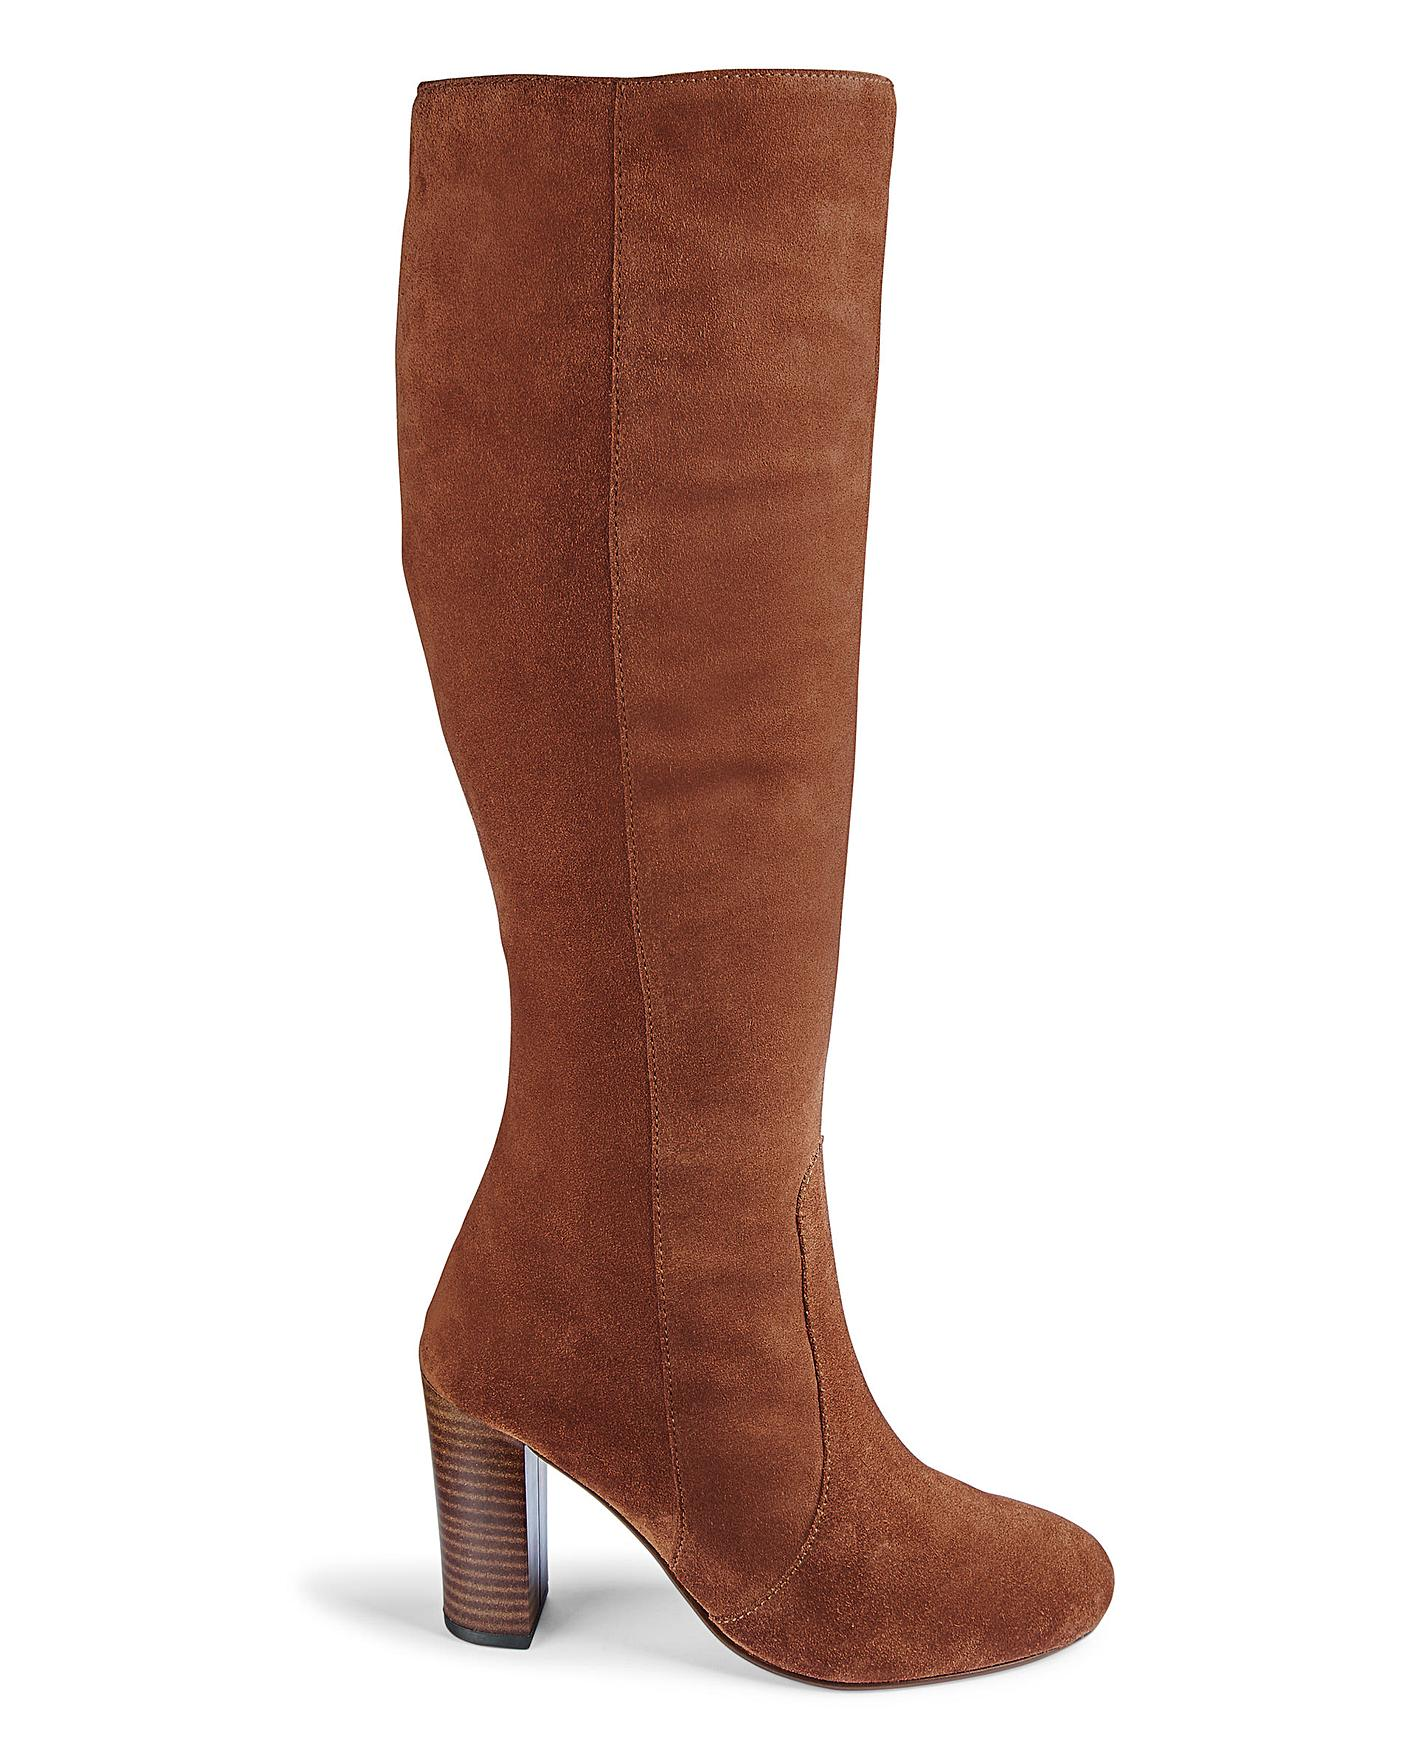 new appearance hot product order online Lani Leather Wide Fit Standard Calf   Simply Be